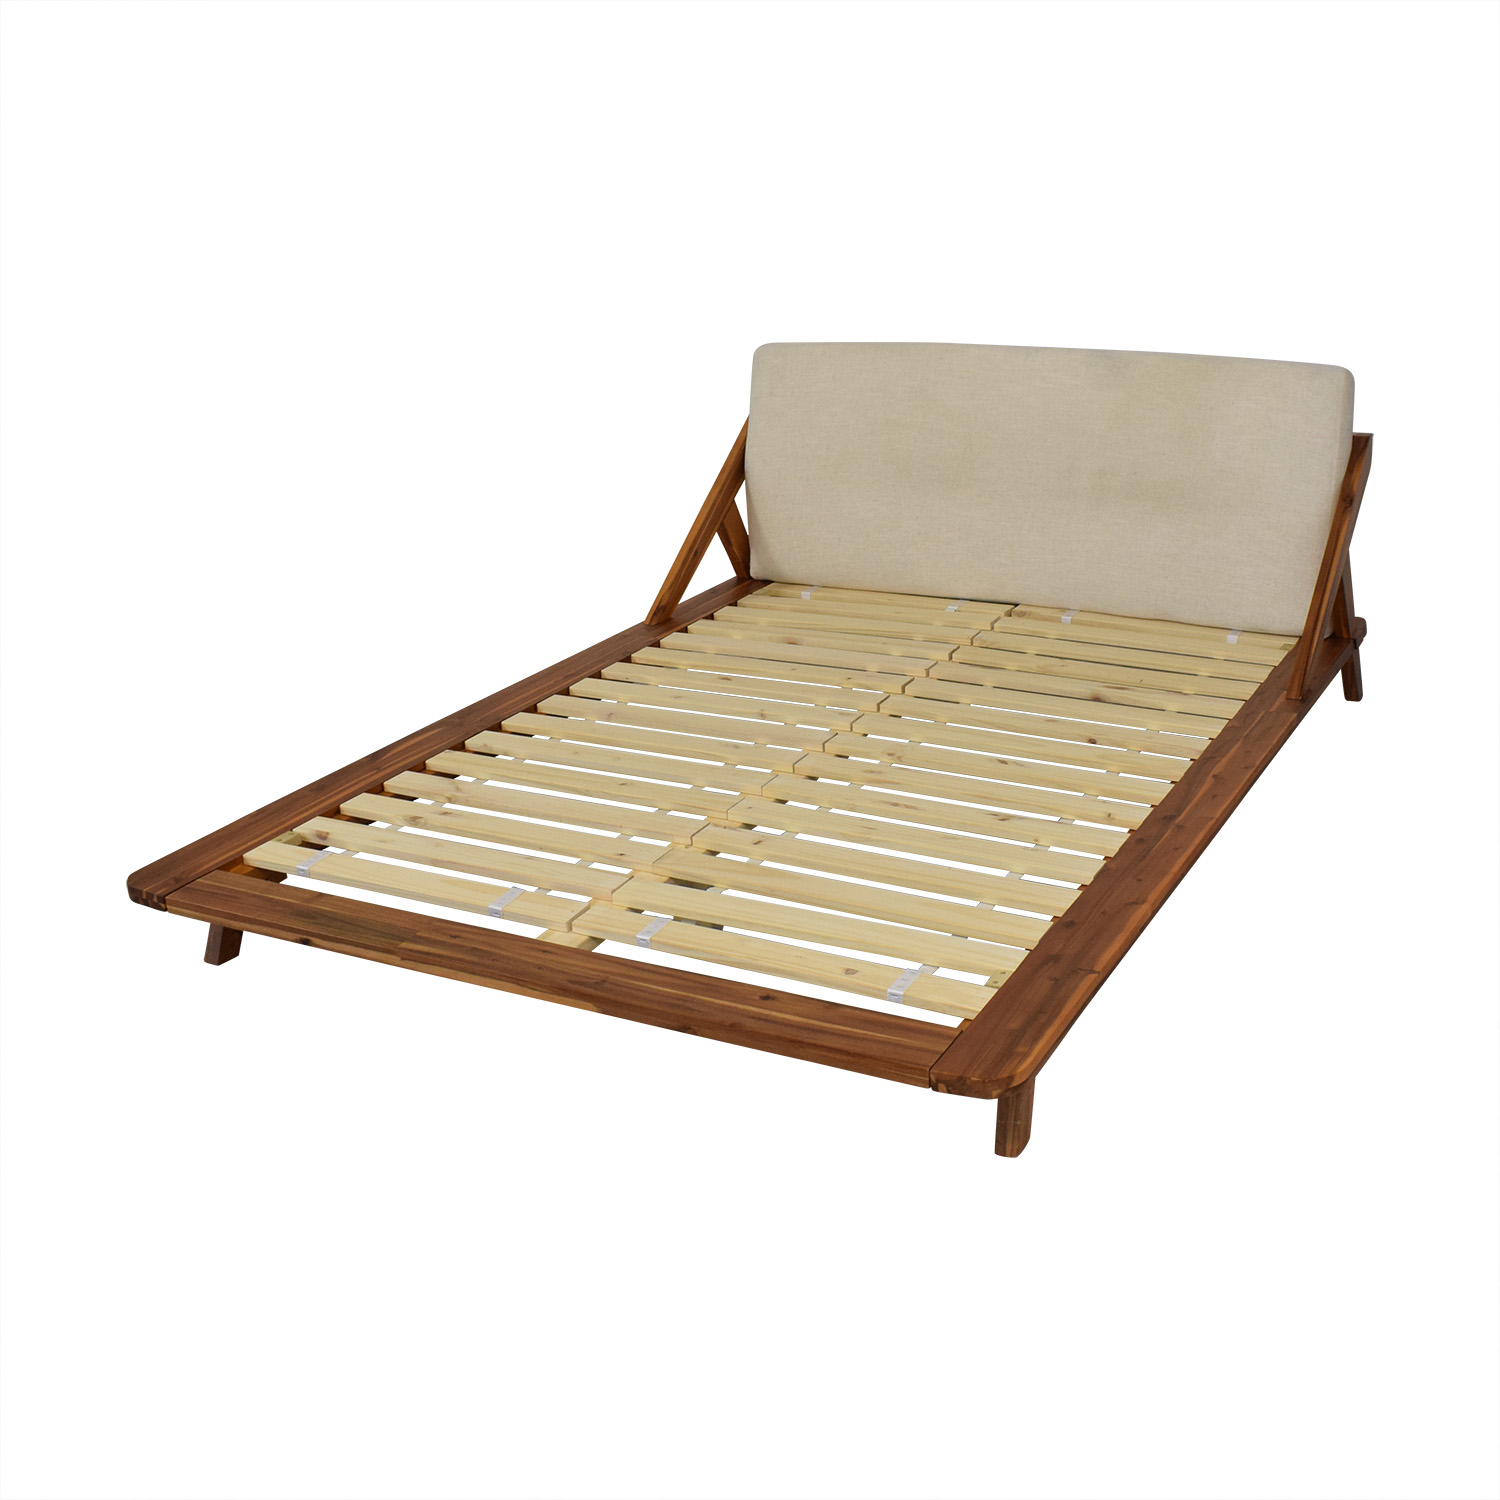 CB2 CB2 Drommen Acacia Wood Full Bed for sale